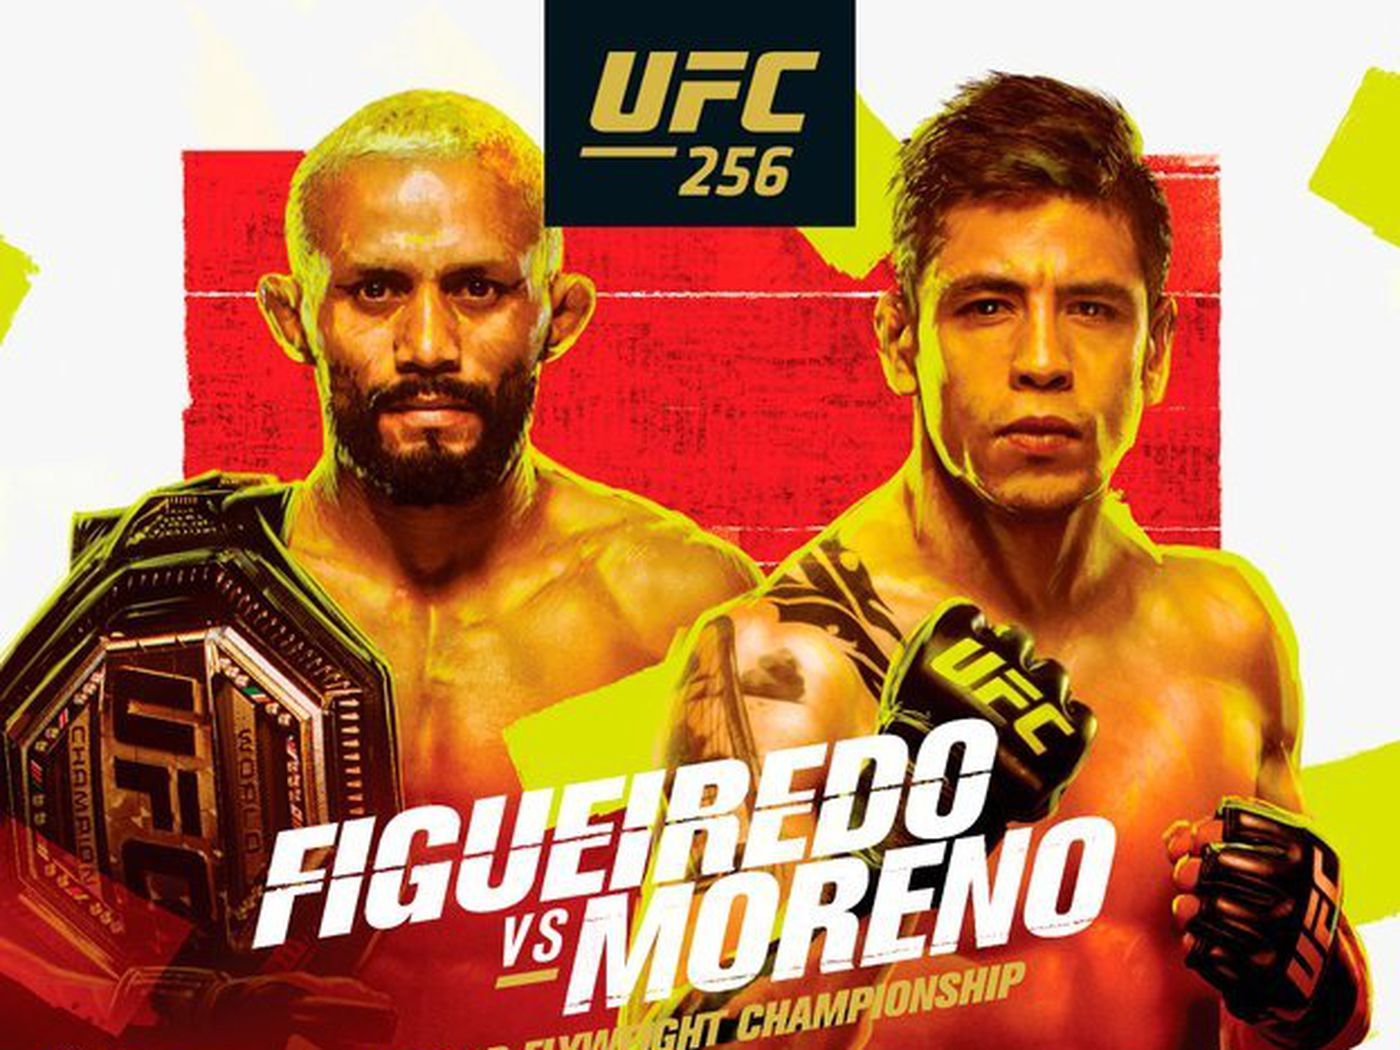 Pic: UFC 256 poster drops for 'Figueiredo vs Moreno' on Dec. 12 in Las  Vegas - MMAmania.com